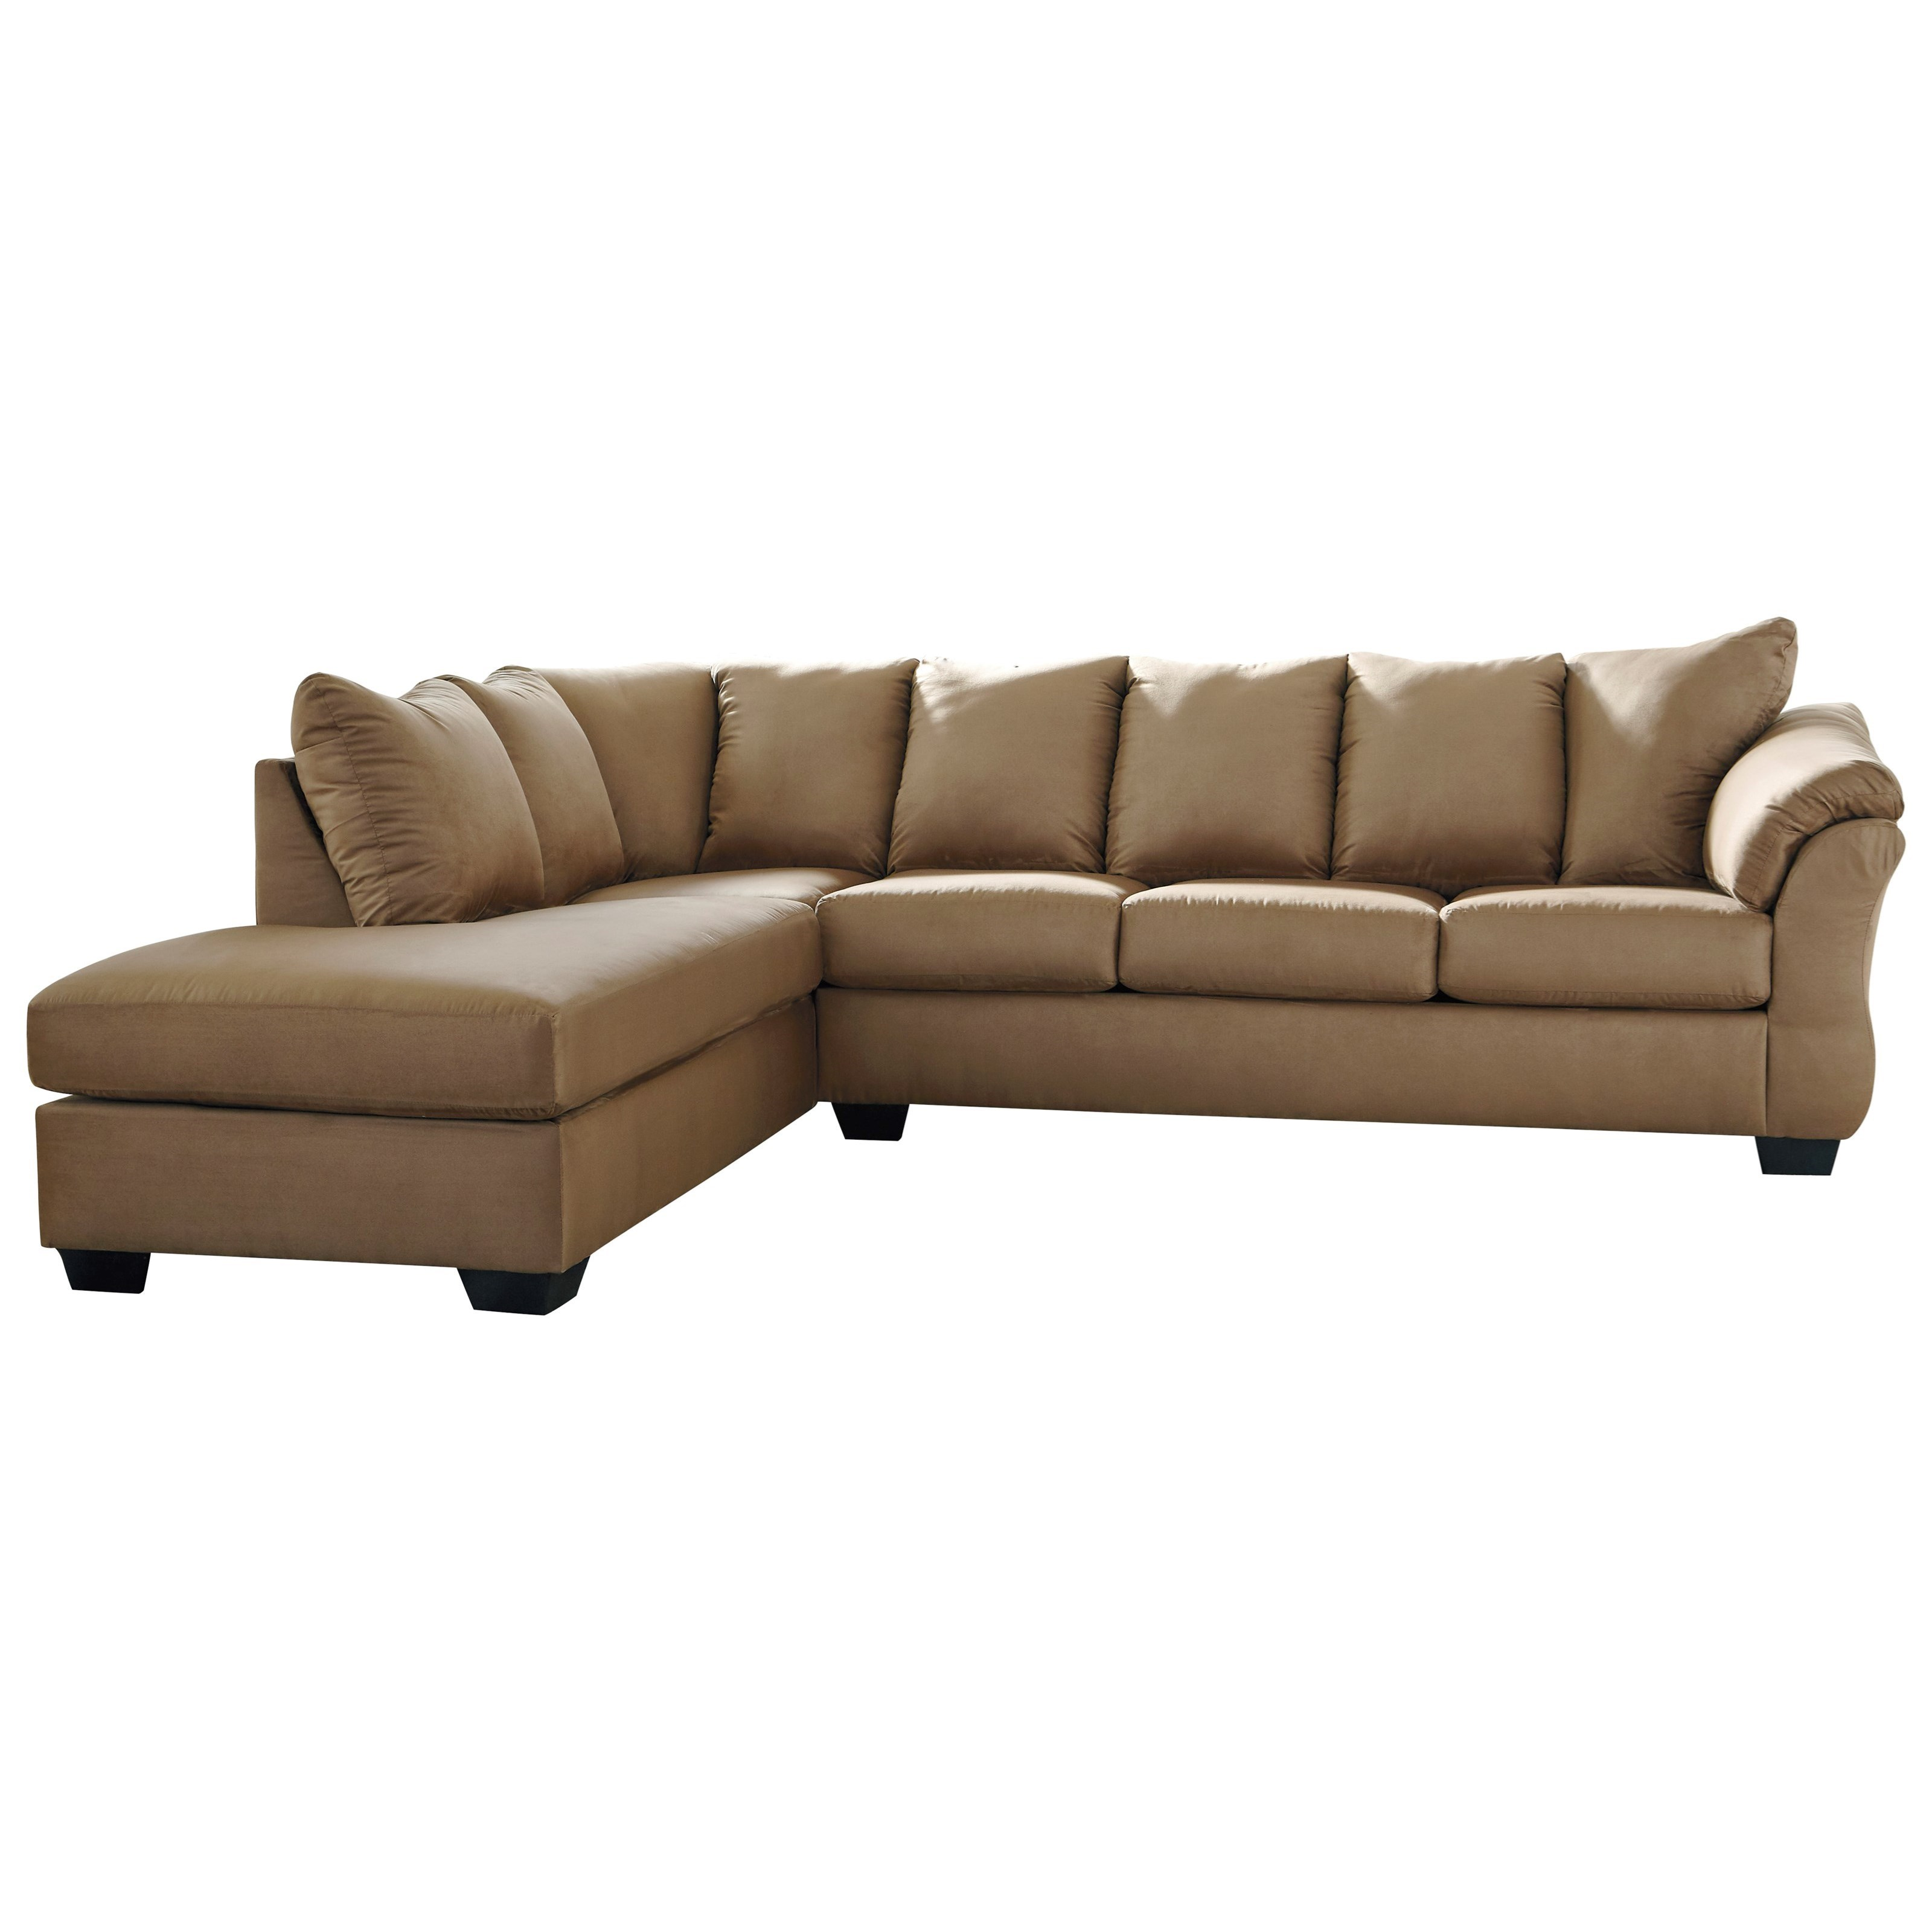 Darcy - Mocha 2-Piece Sectional Sofa with Chaise by Ashley (Signature Design) at Johnny Janosik